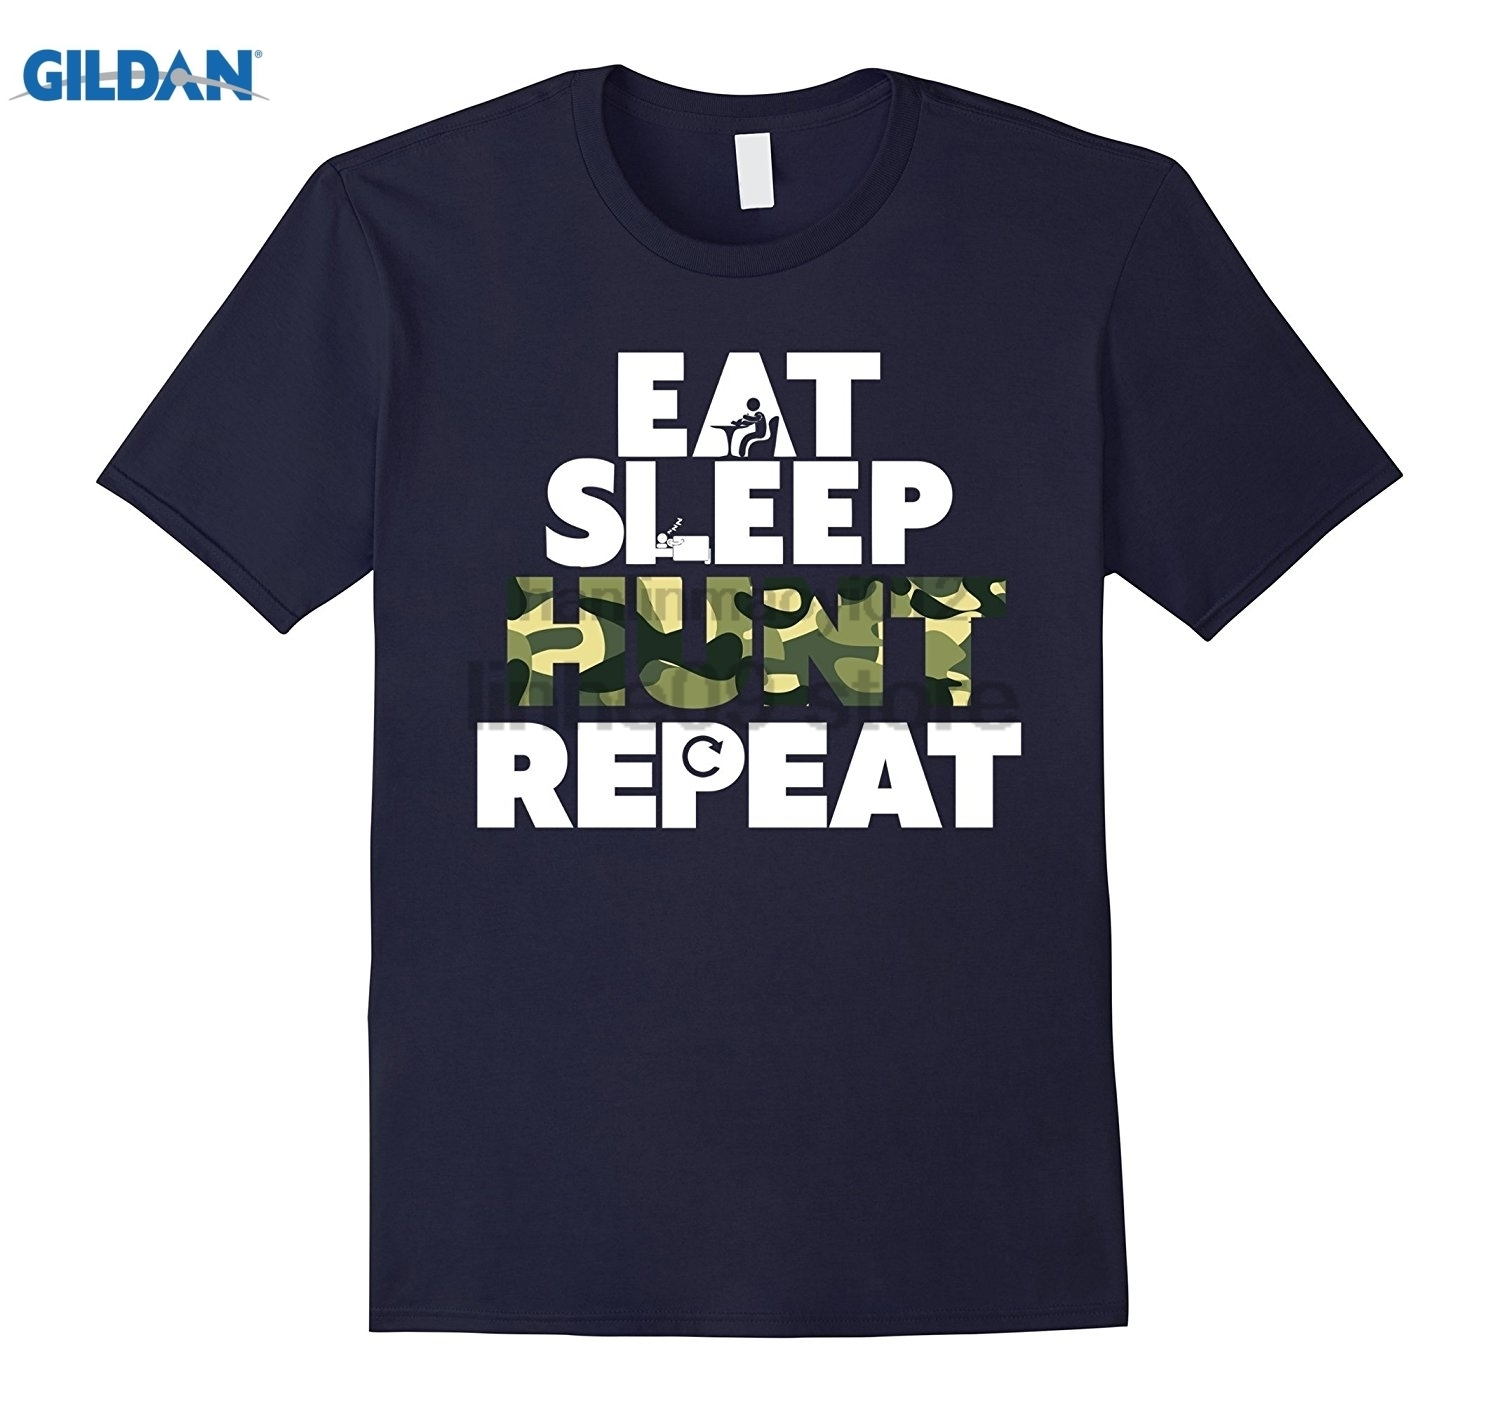 GILDAN Eat, Sleep, Hunt, Repeat - T-Shirt Womens T-shirt